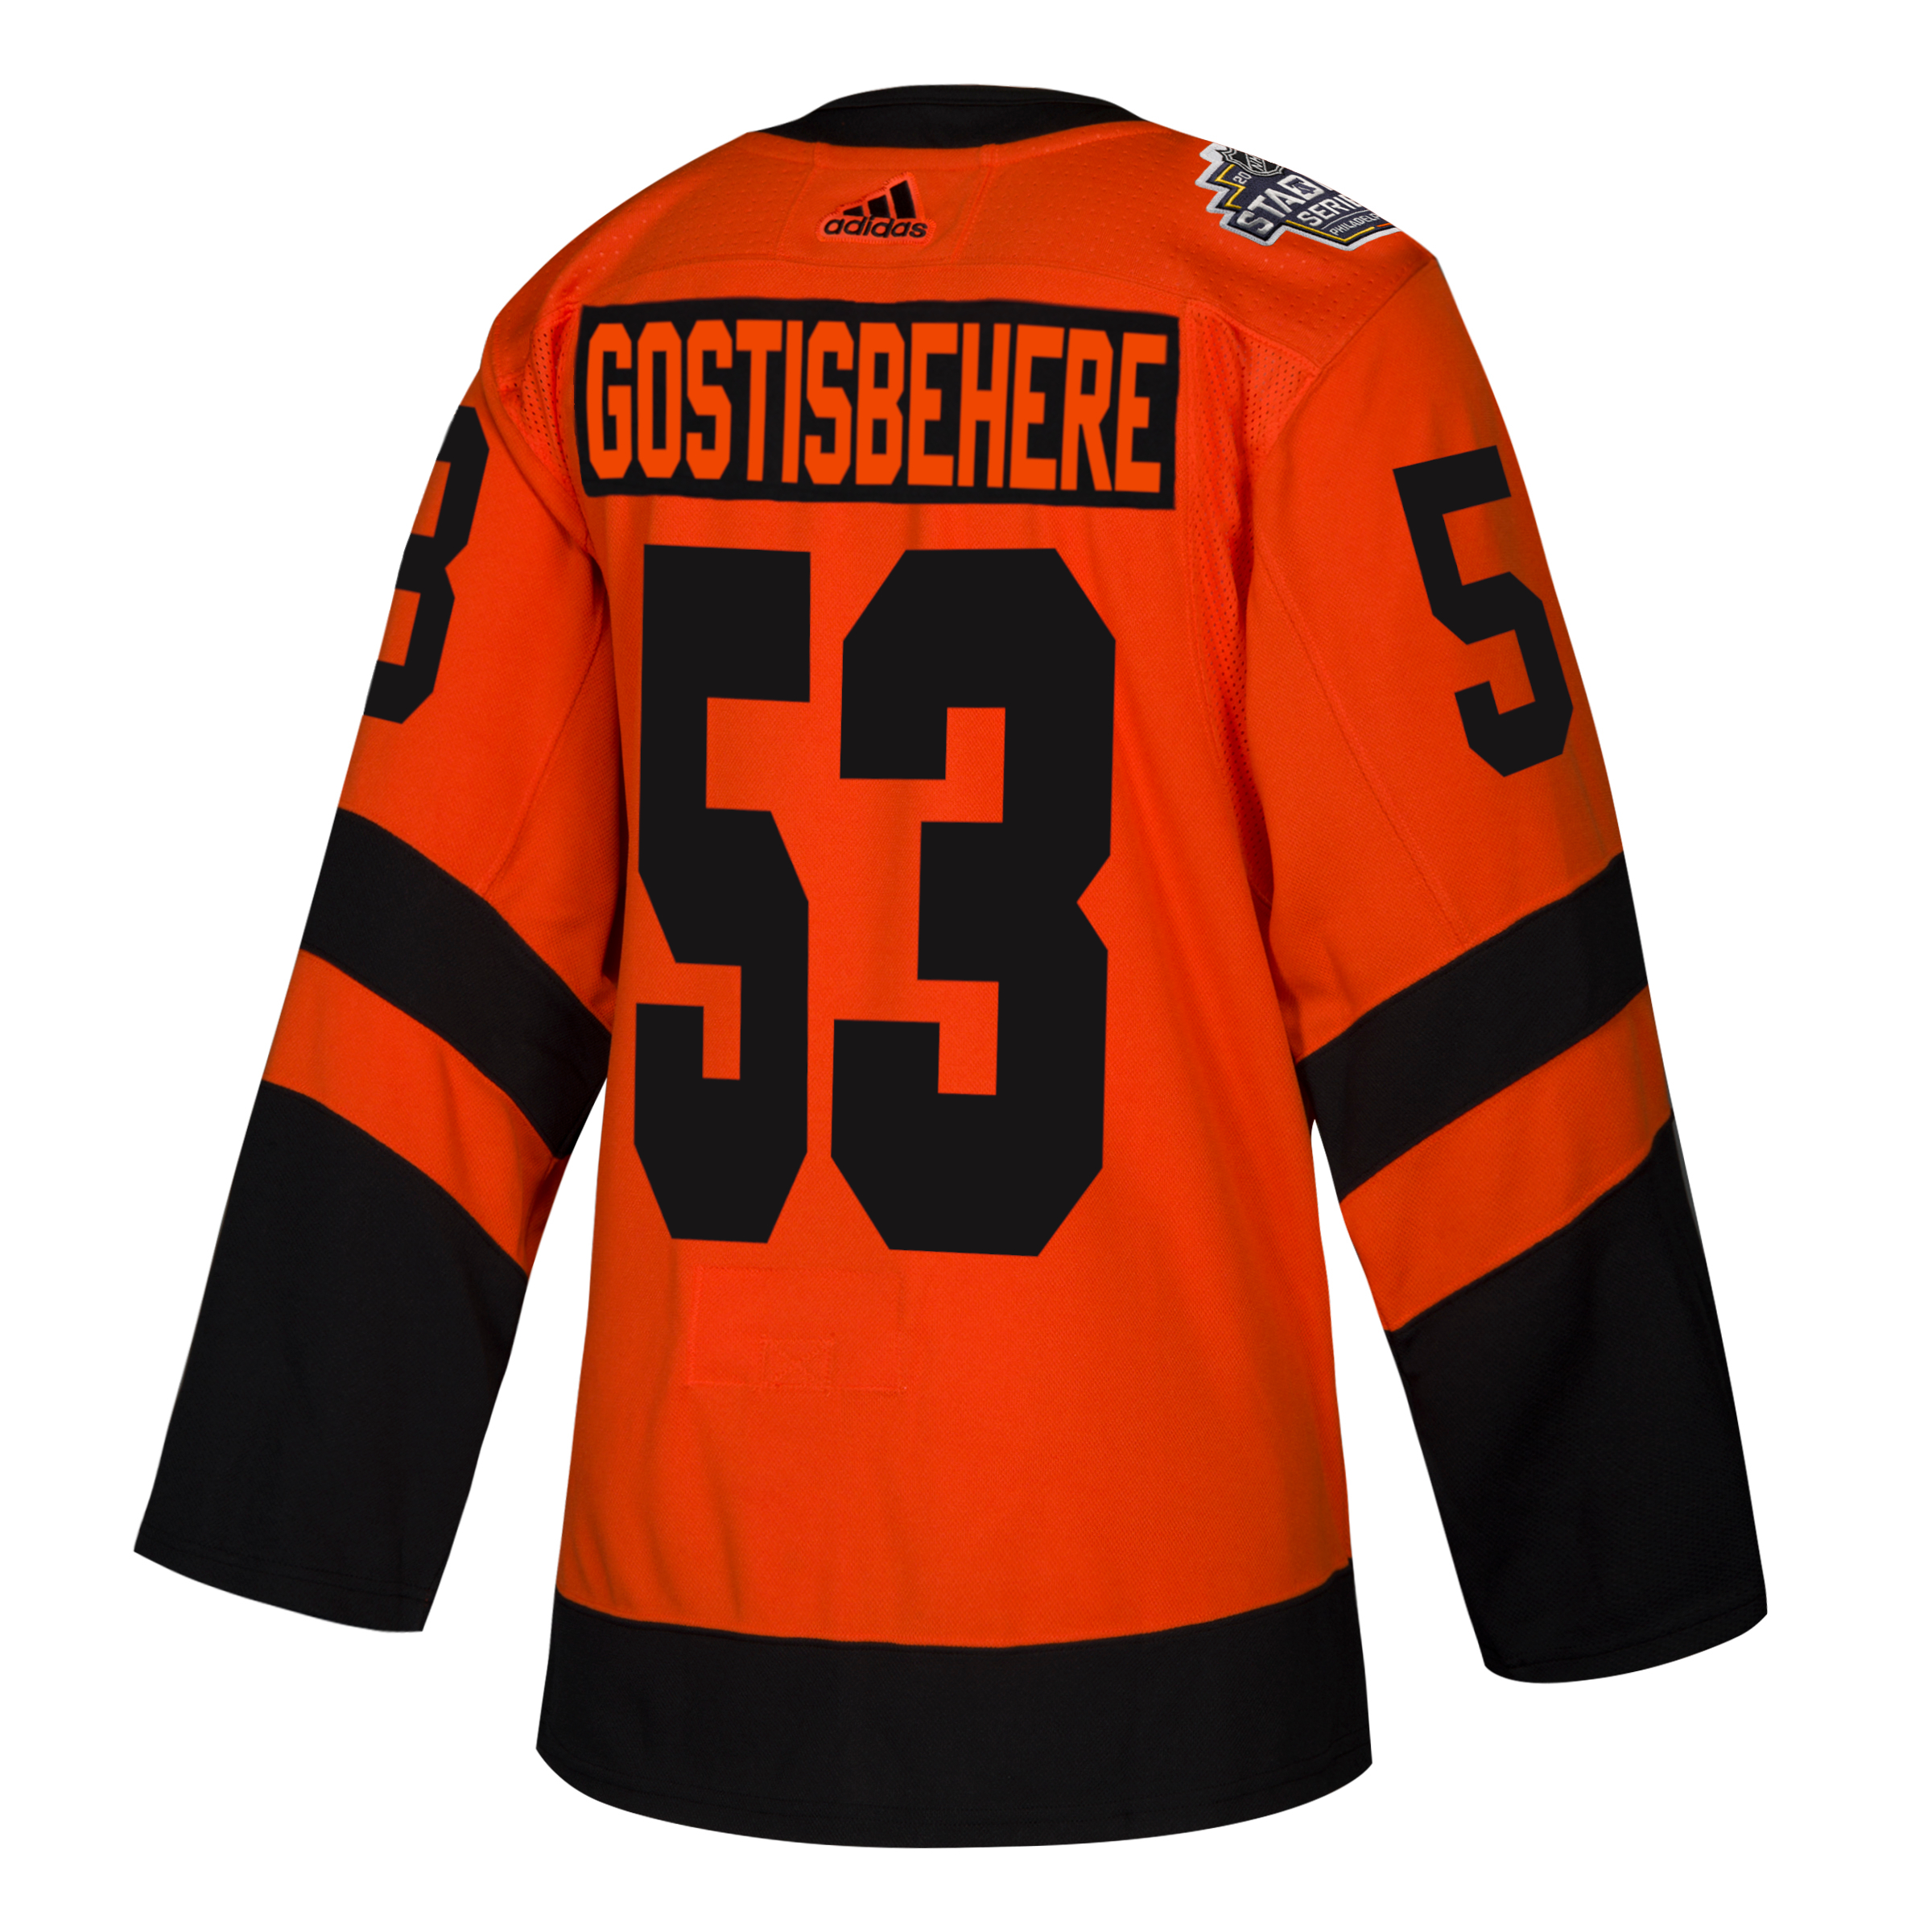 save off 0bda5 cede6 Philadelphia Flyers Men's 2019 Stadium Series Gostisbehere Jersey by Adidas